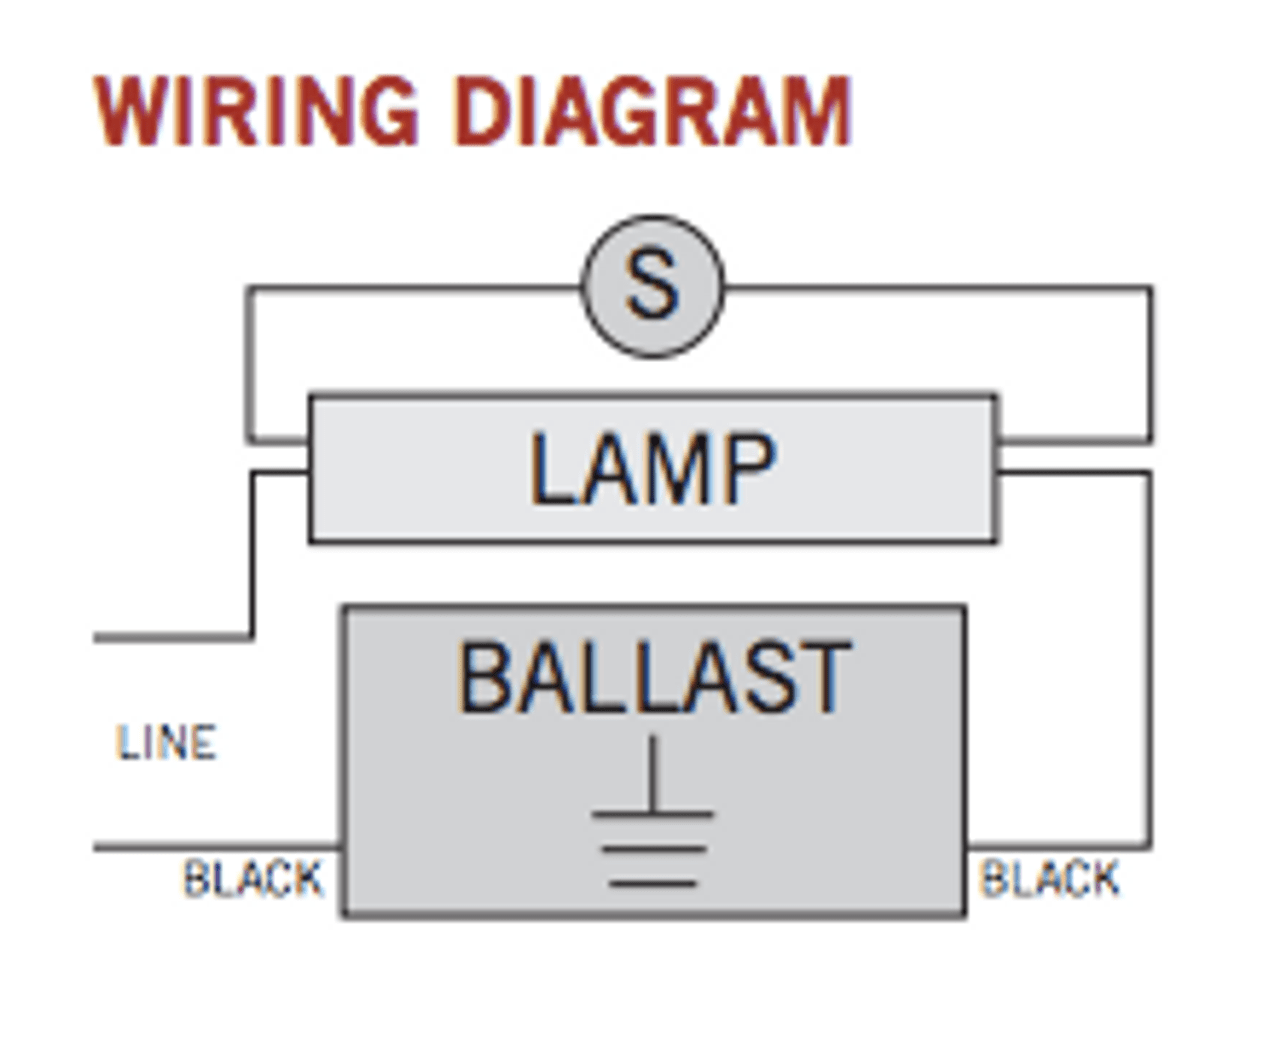 hight resolution of cc1322mtp keystone cc1322mtp keystone wiring diagram